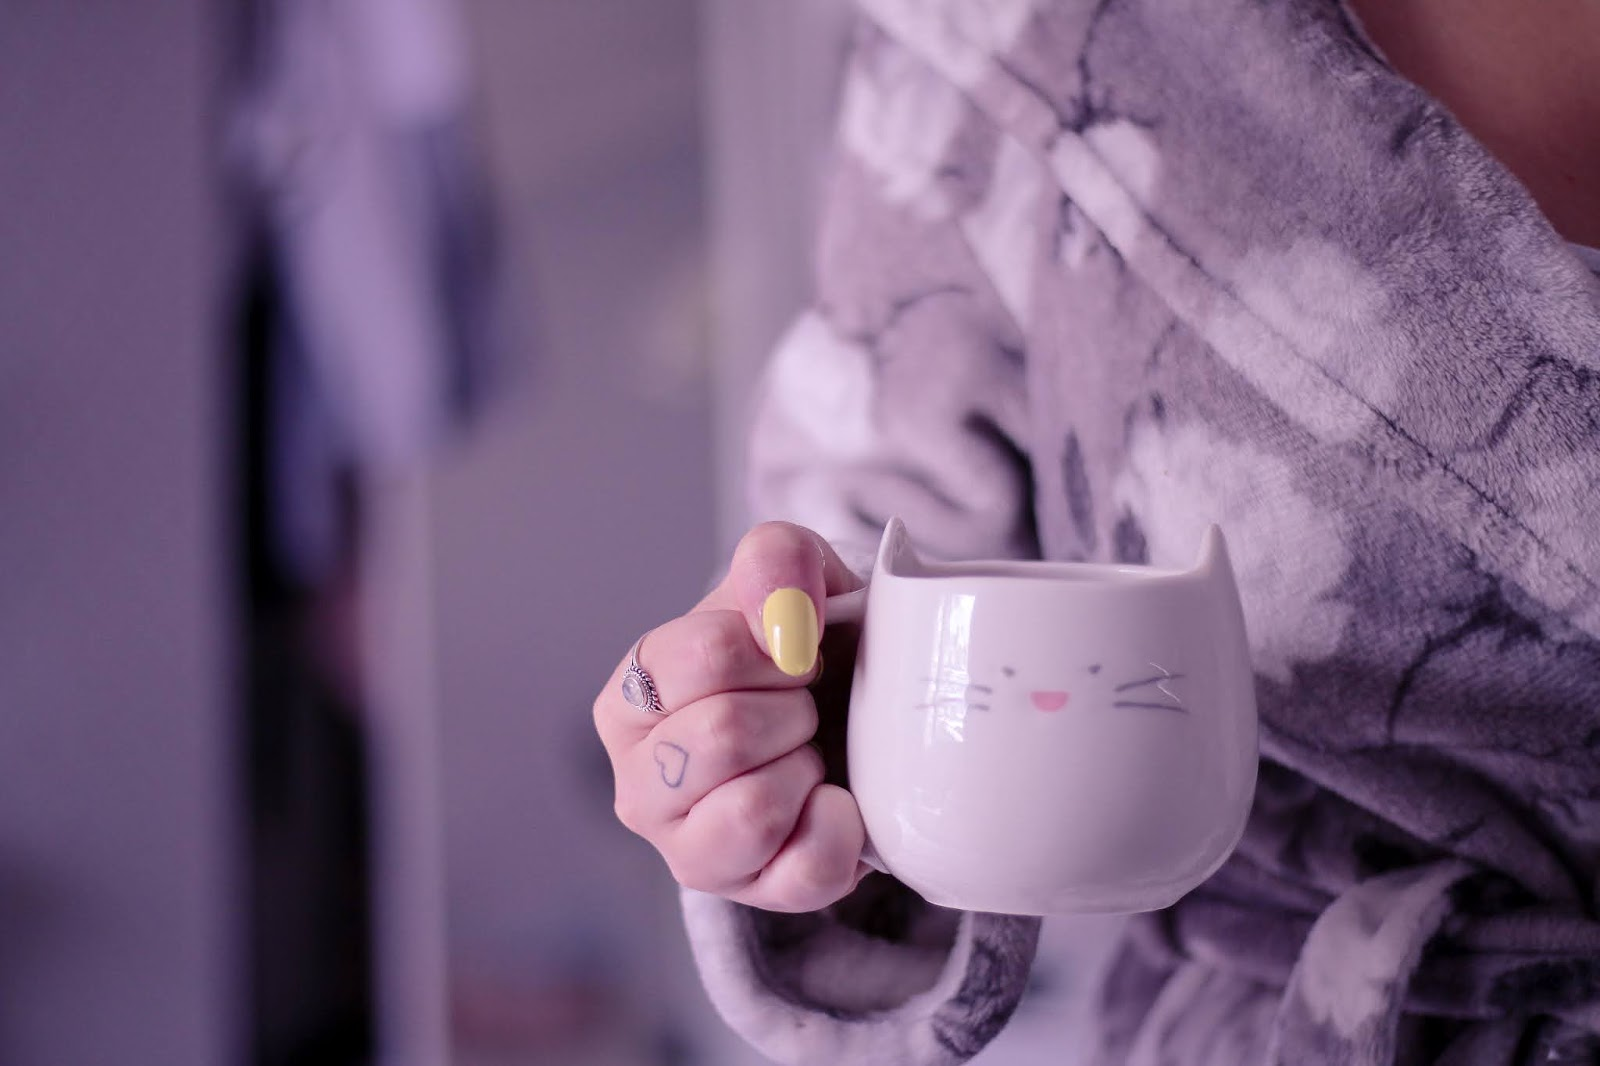 Medium close up shot of a girl in a grey robe holding a white cat mug